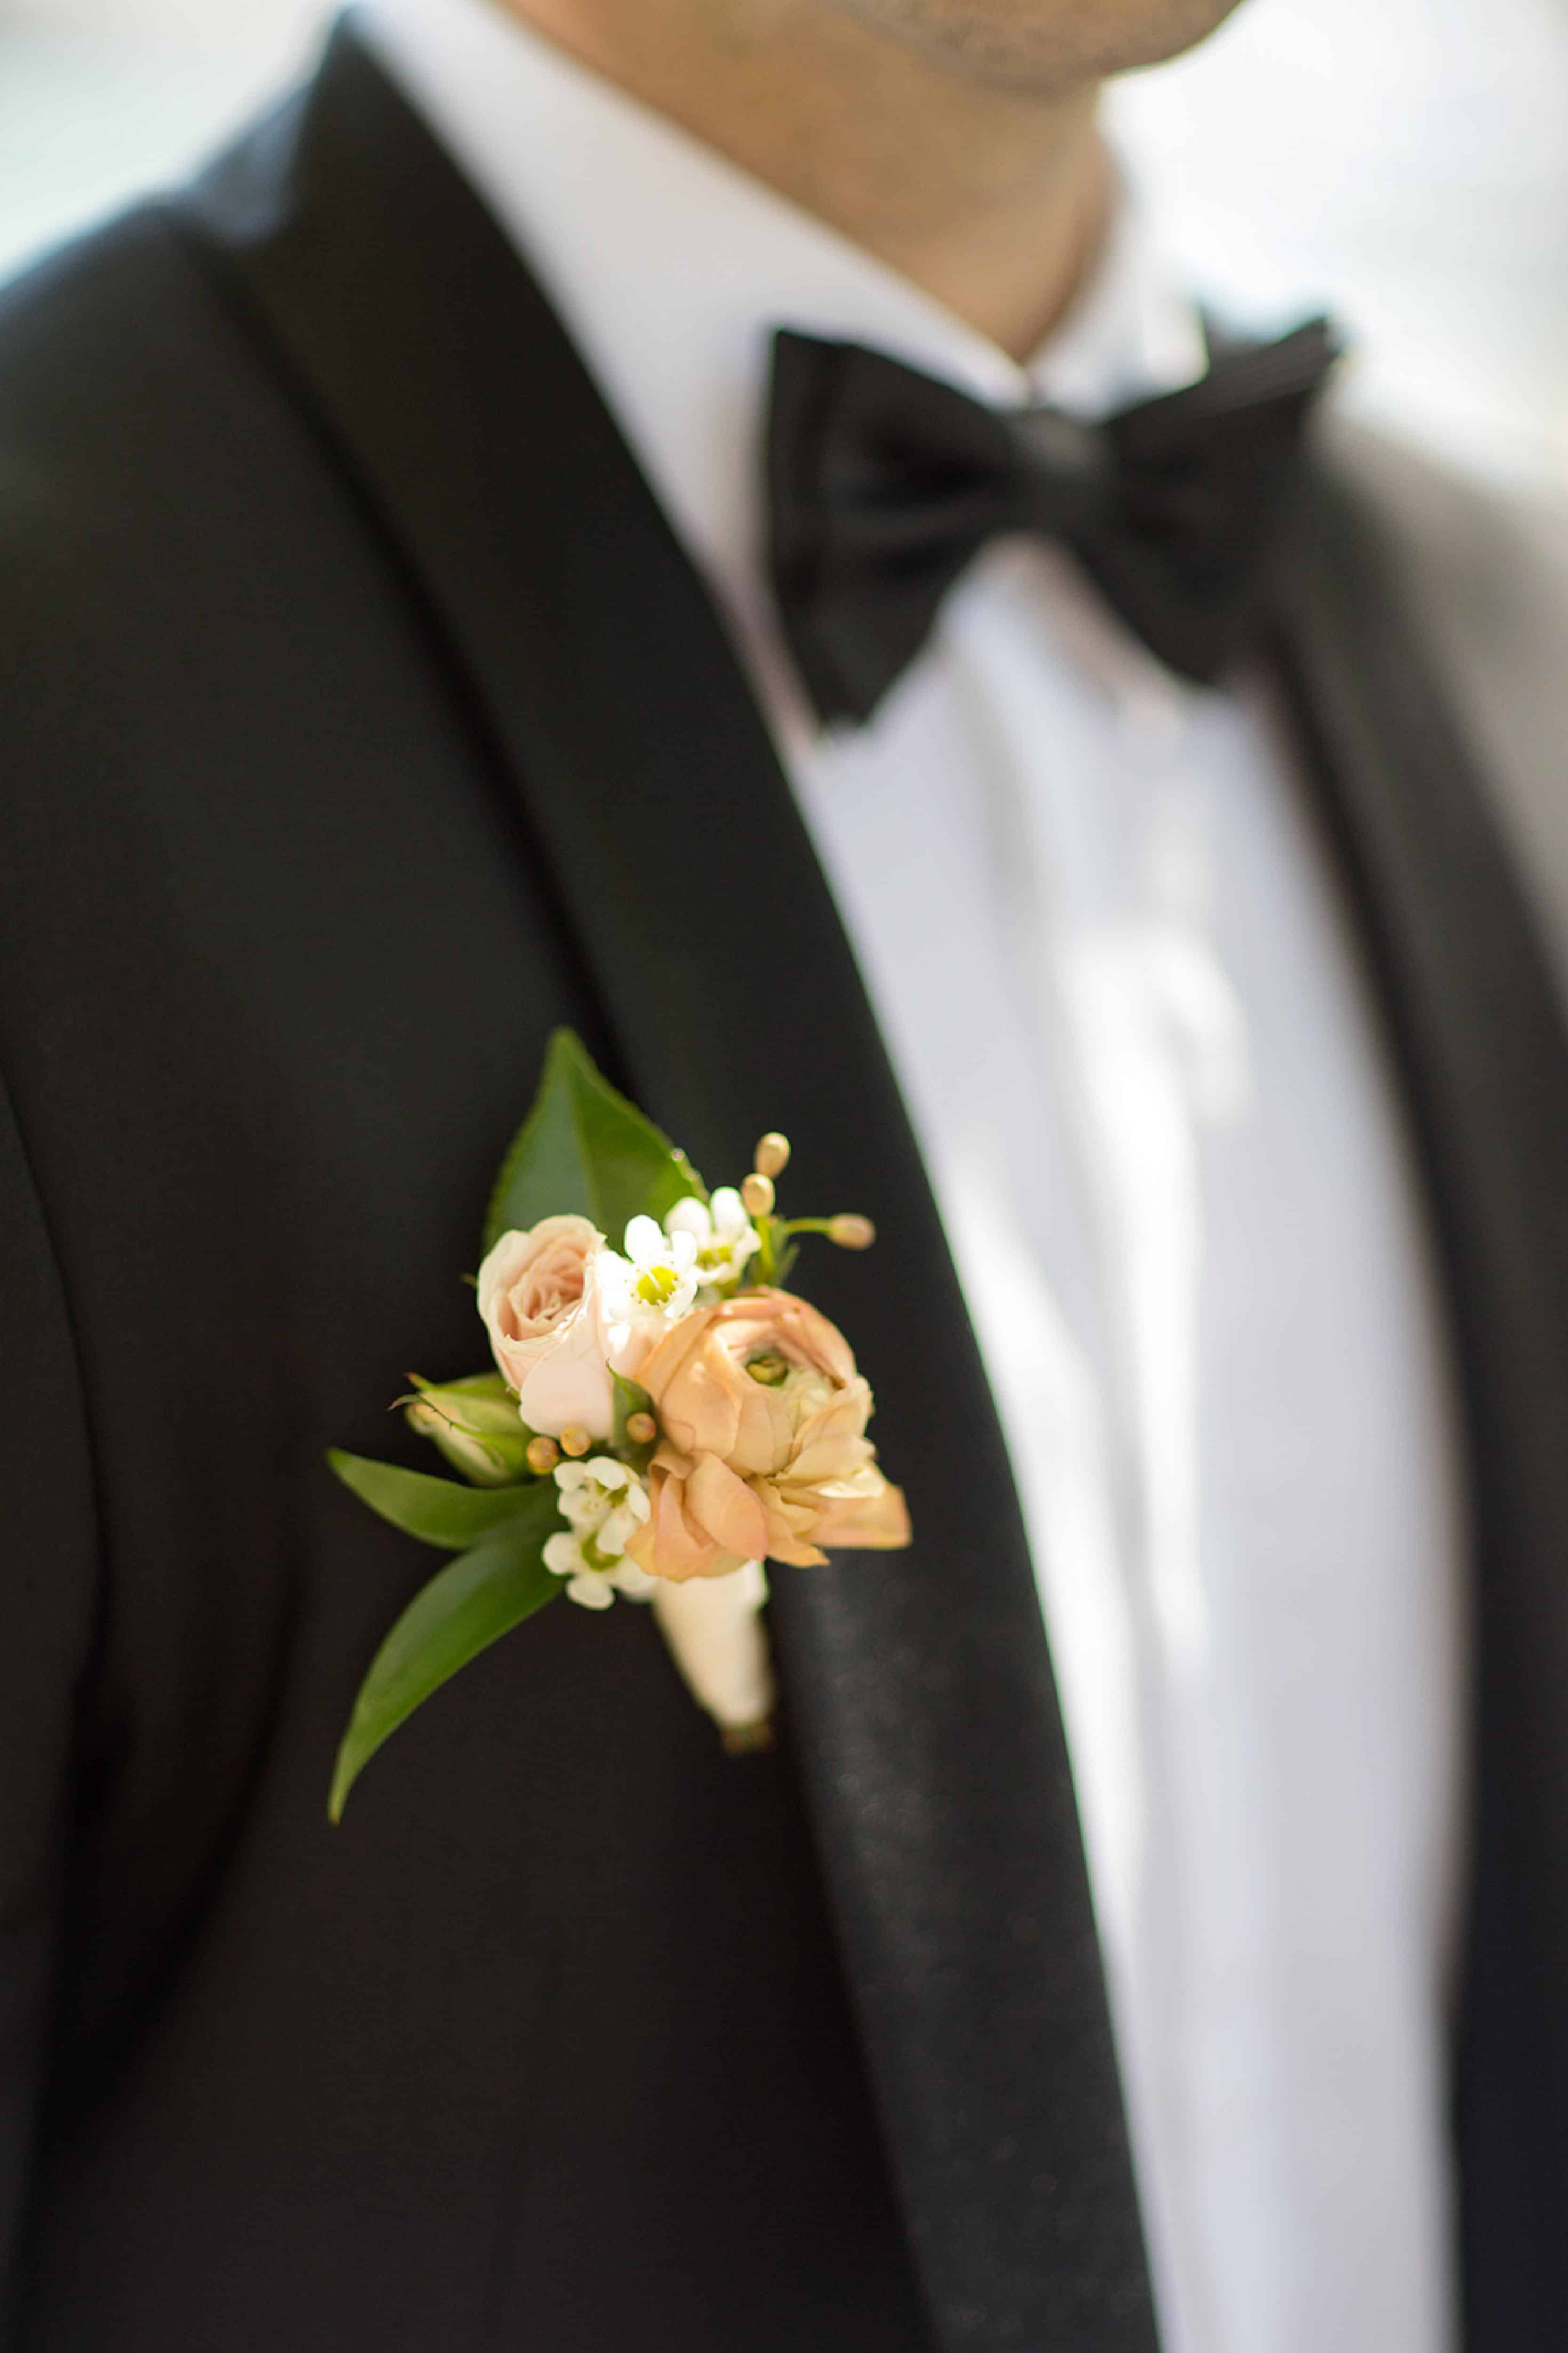 Peach boutonnière by Celsia Florist